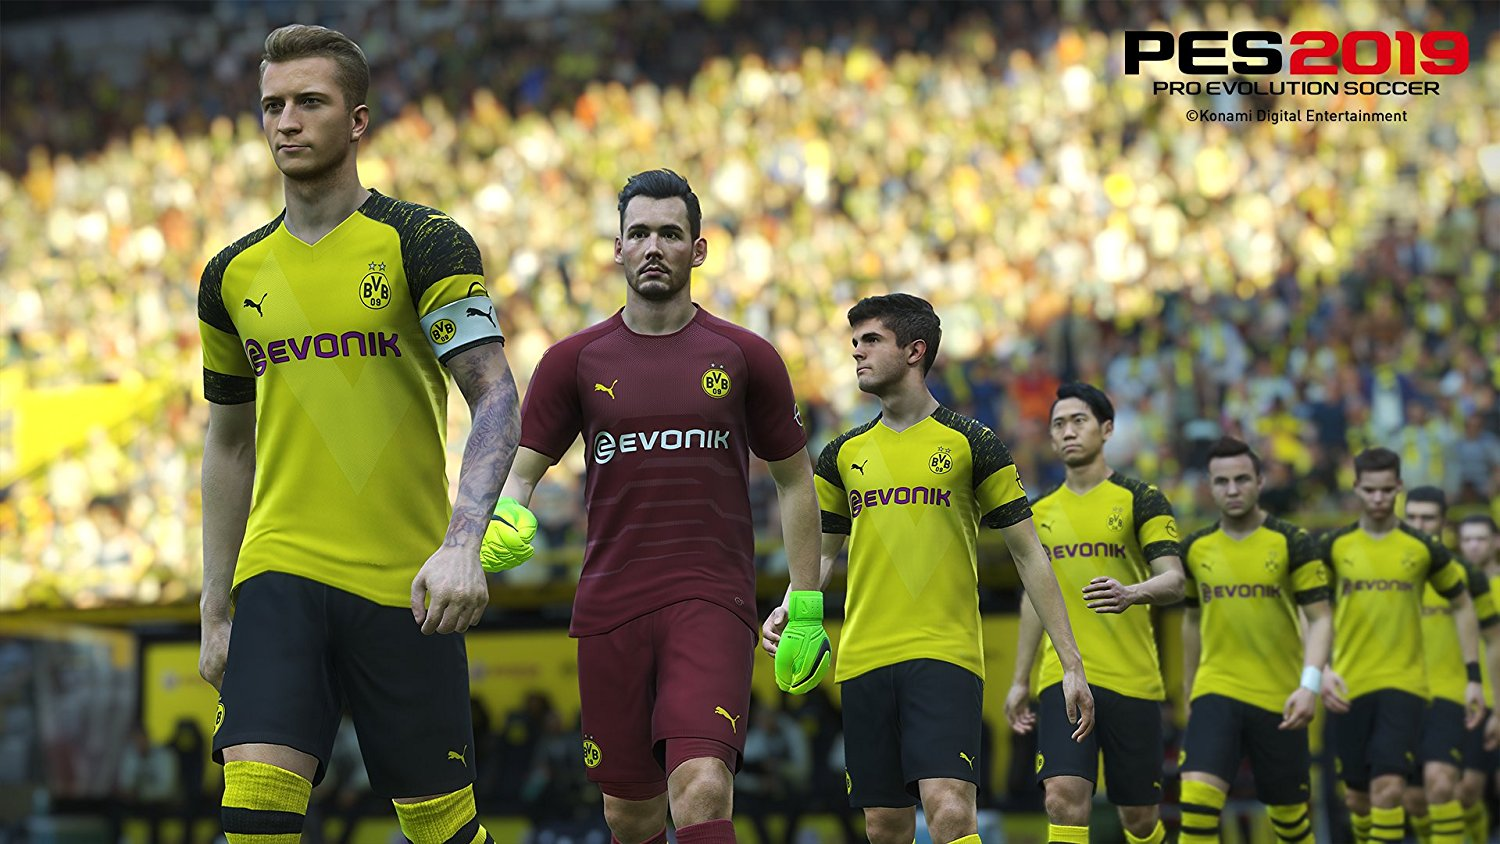 SONY PlayStation 4 - Pro Evolution Soccer 2019